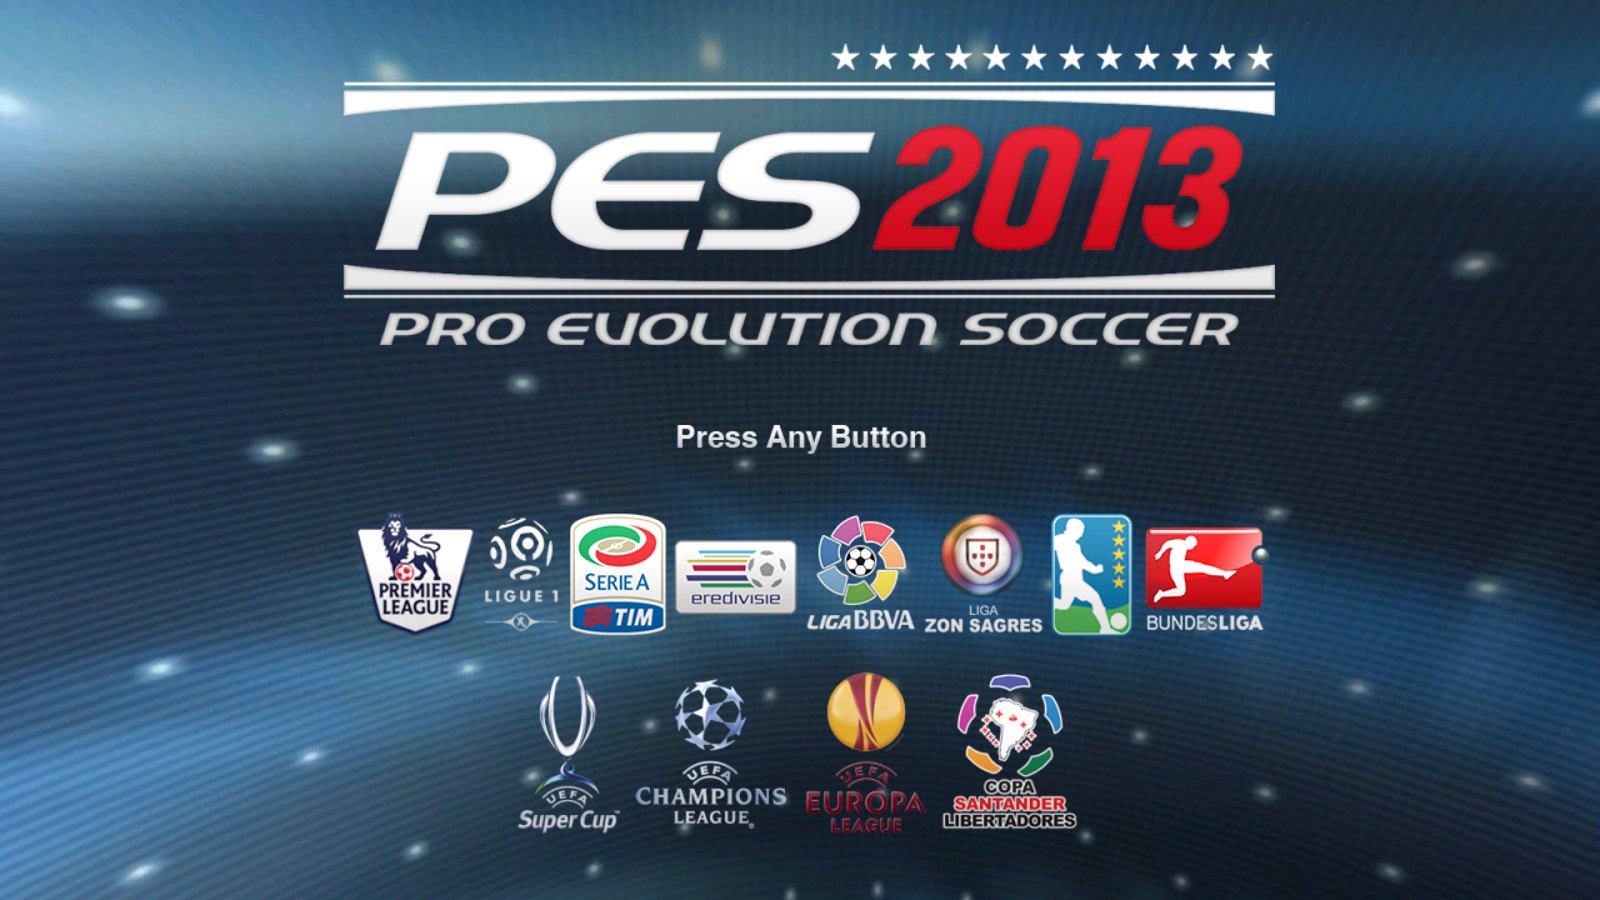 pes 2013 demo patch pc free download